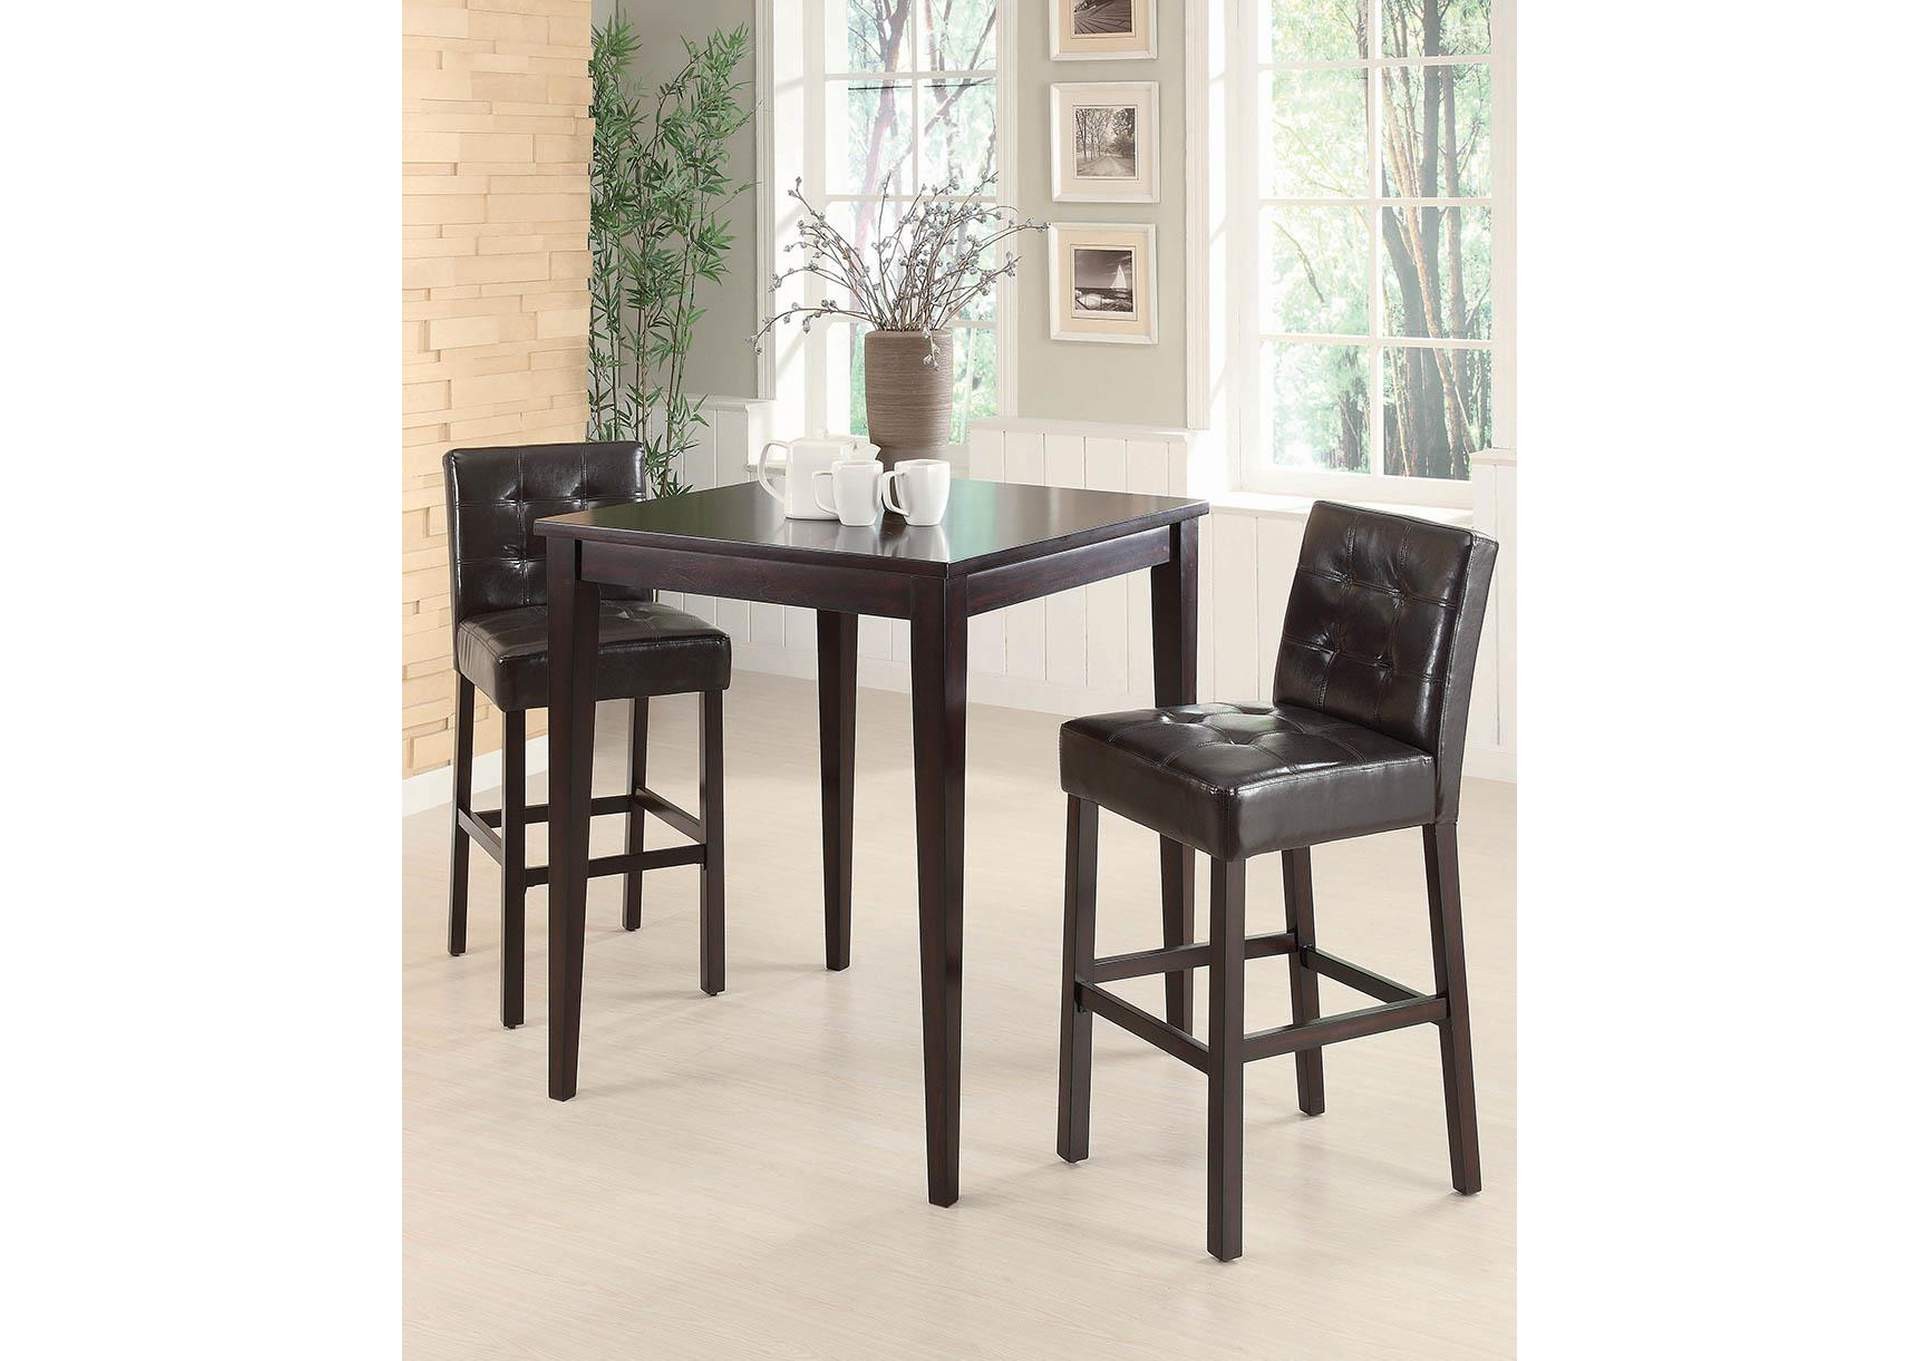 Davis Home Furniture Asheville Nc Cappuccino Cappuccino Bar Chair Set Of 2